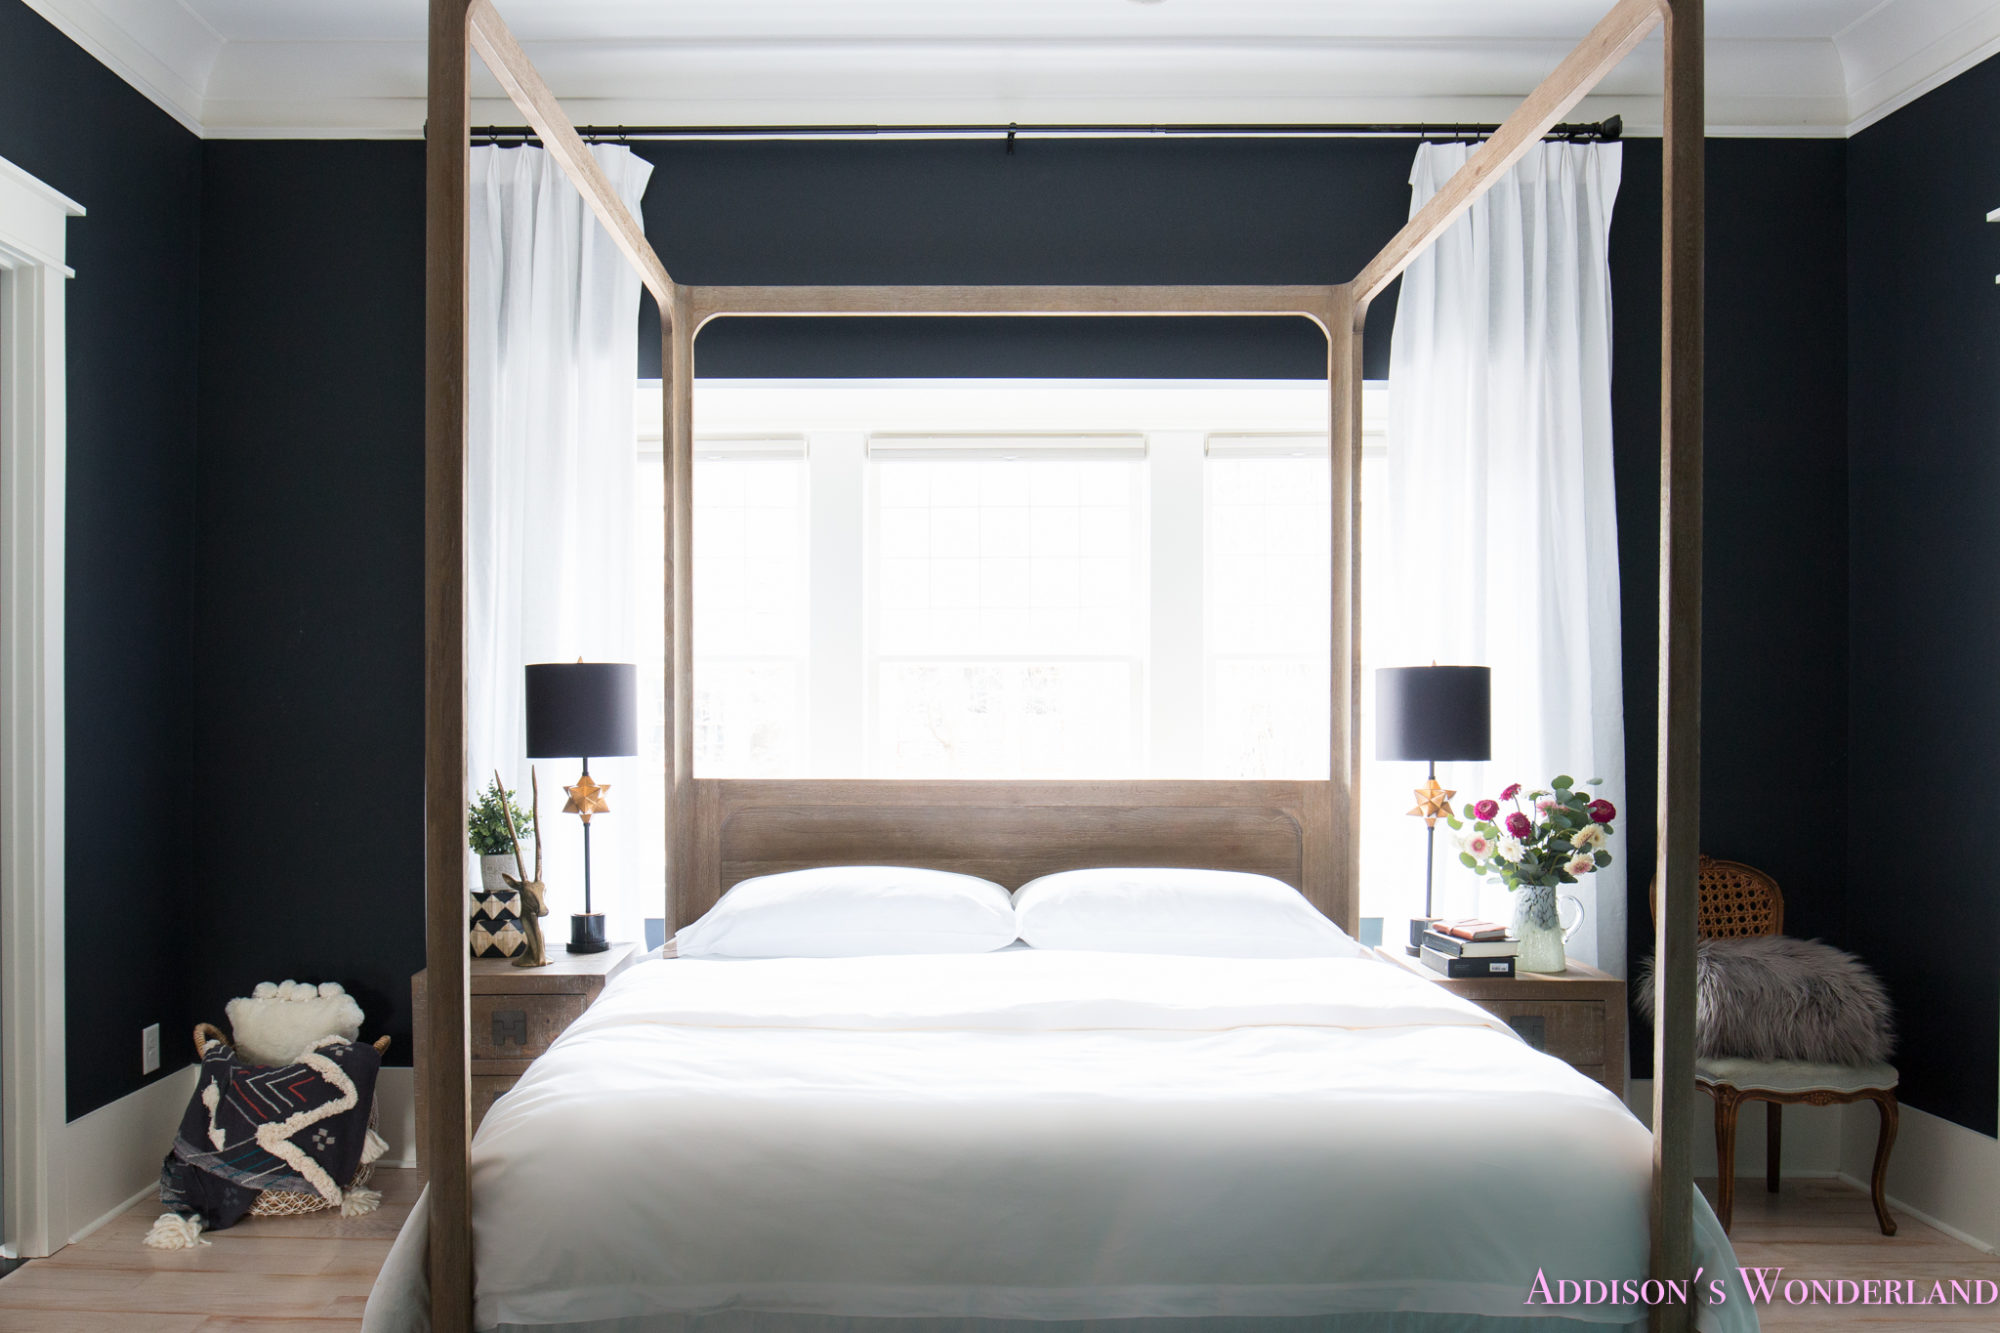 Our Black Master Bedroom Update With All White Bedding By Boll Branch